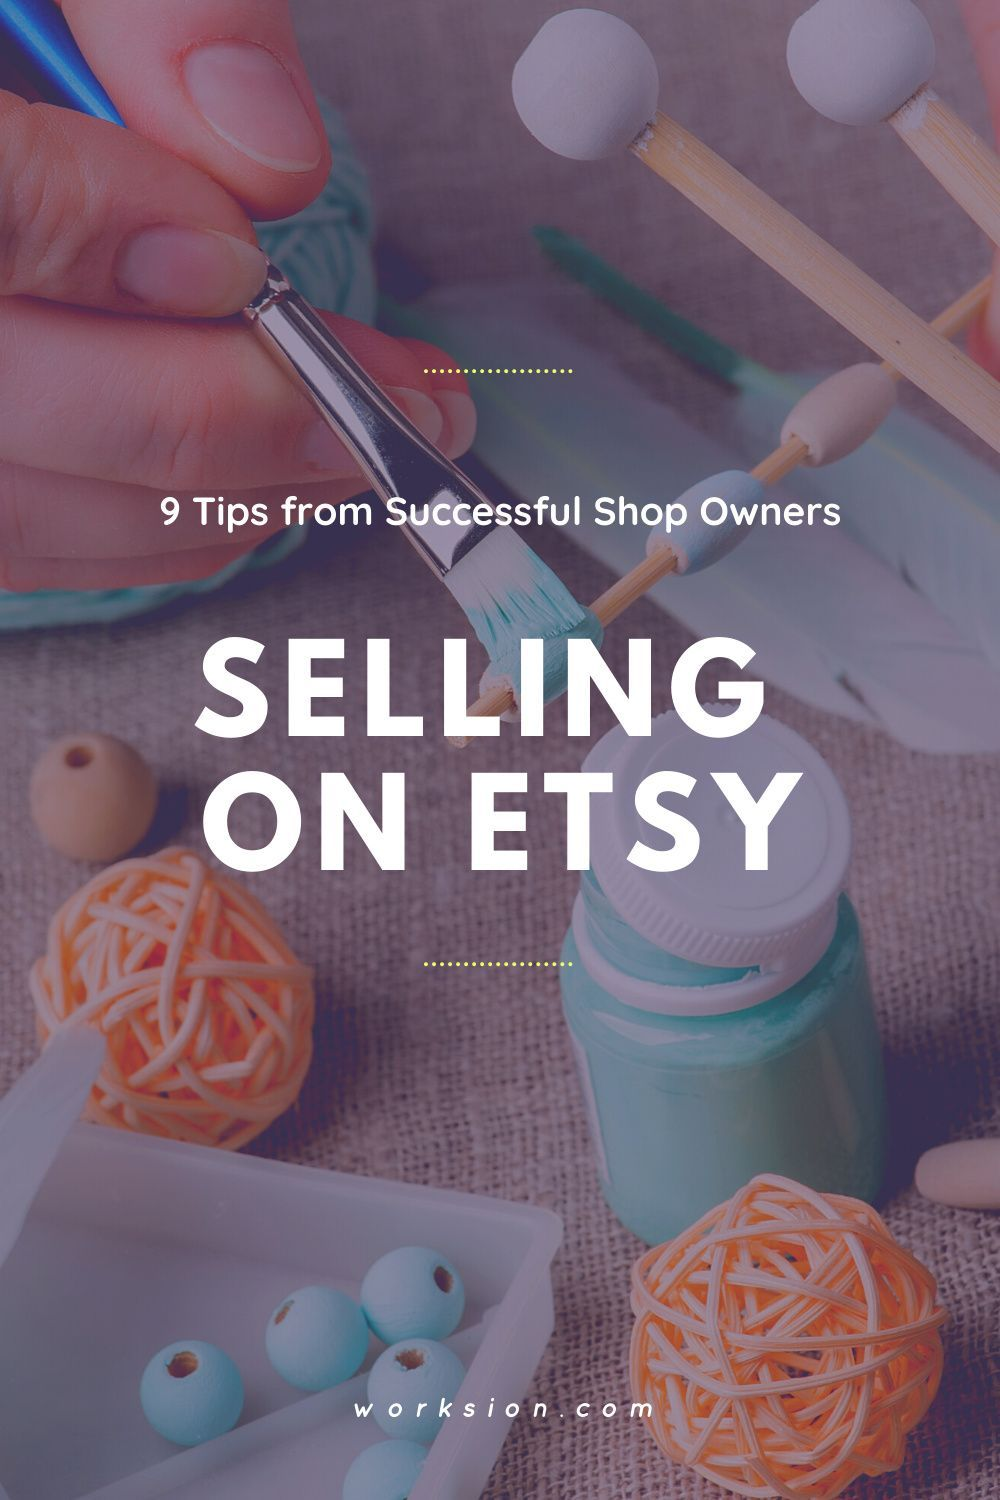 Is It Worth It To Sell On Etsy? 9 Tips from Successful